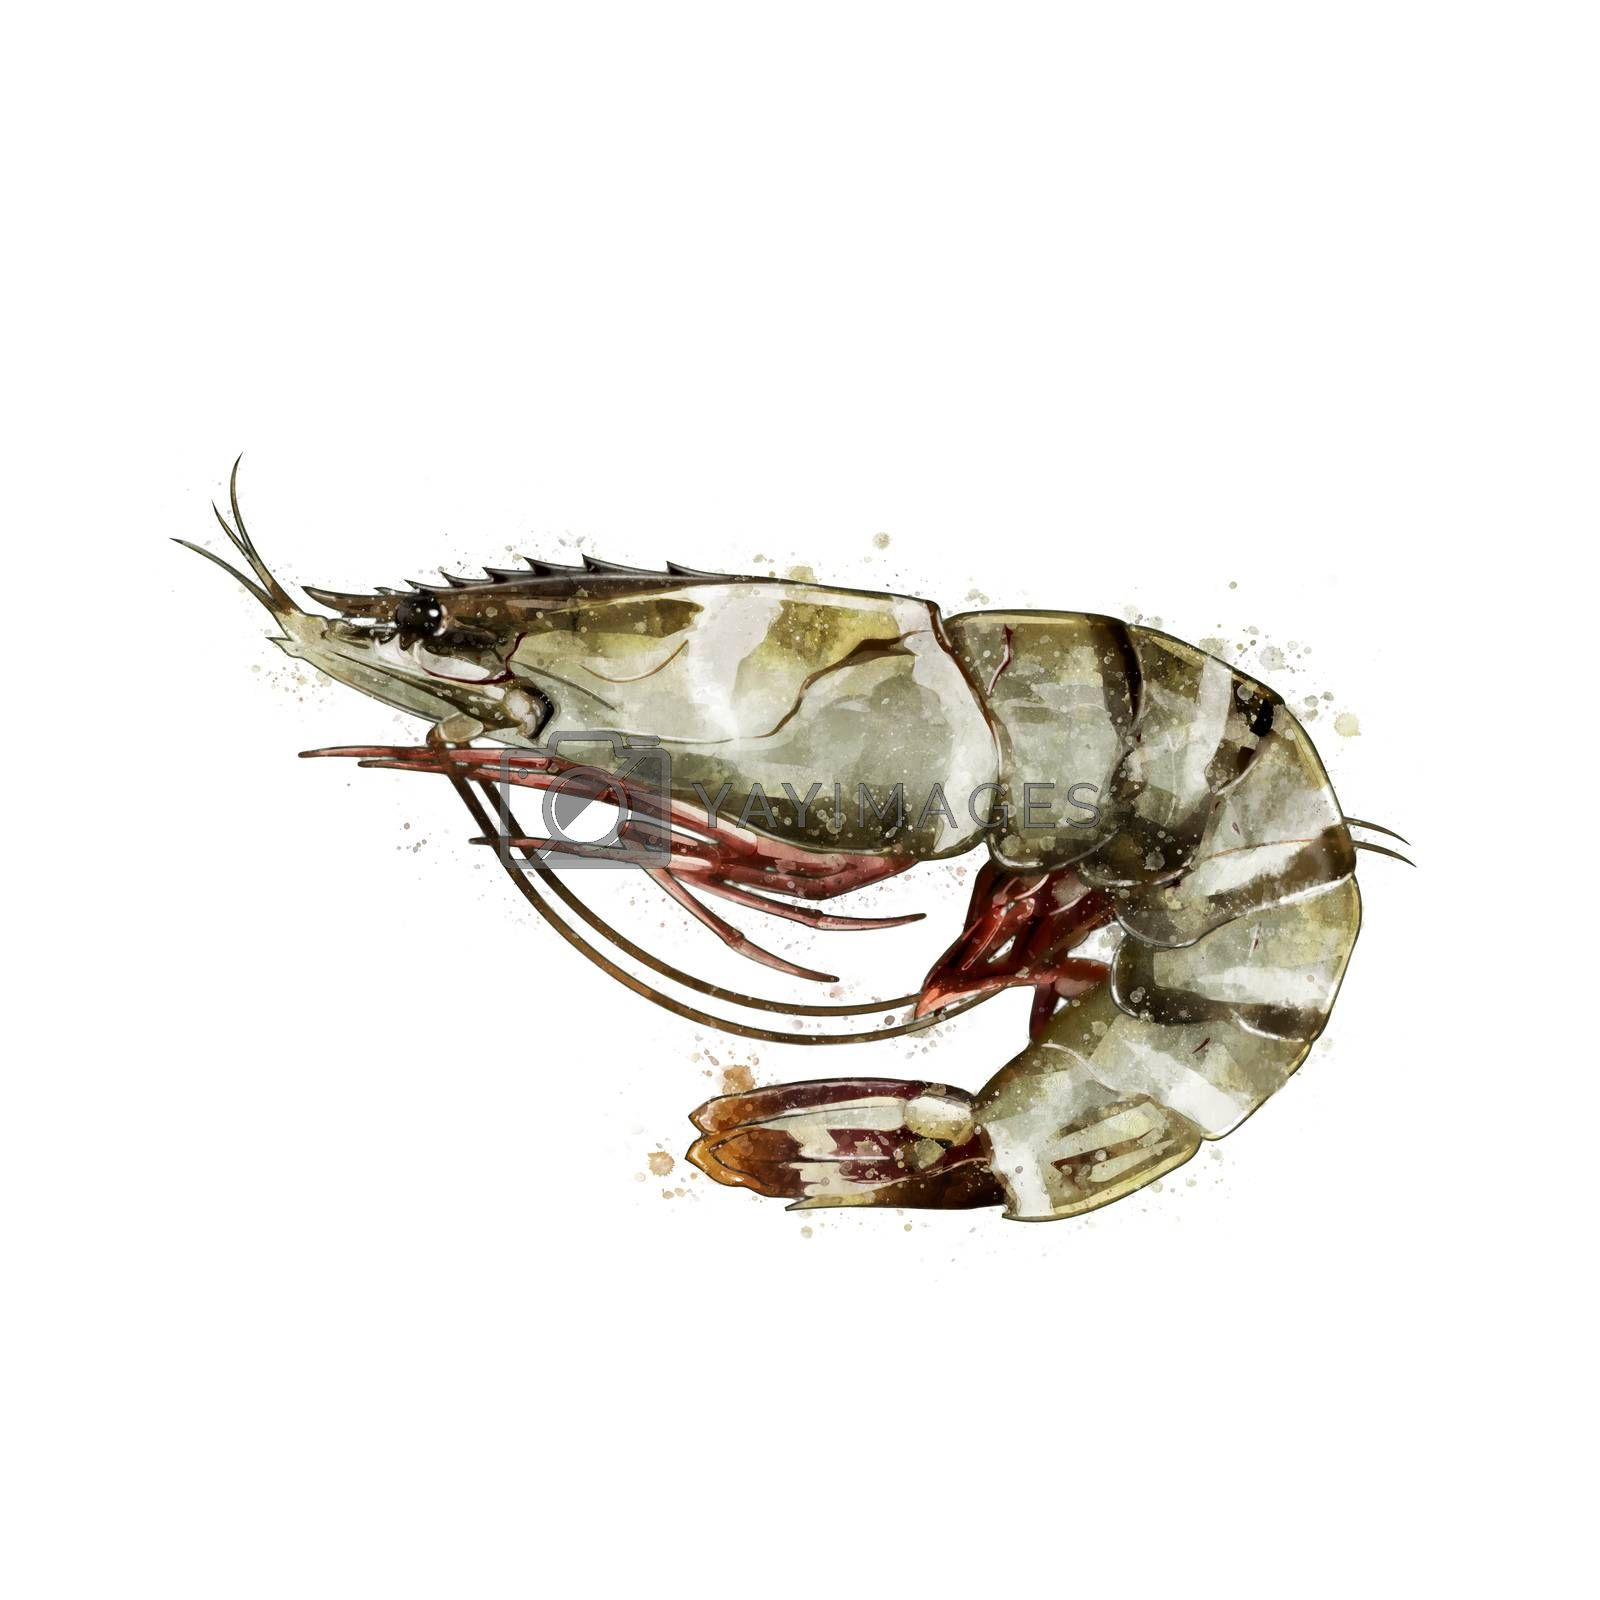 Tiger Shrimp, isolated raster illustration in watercolor style on a white background.